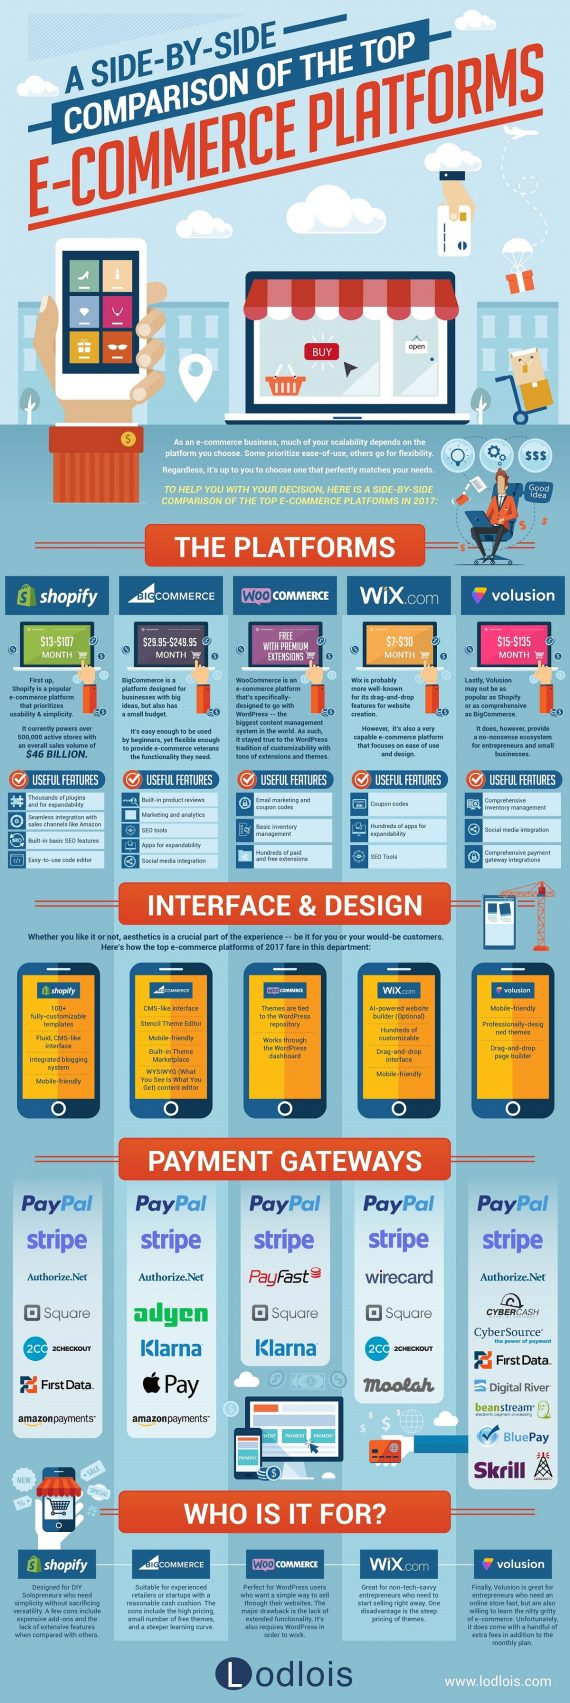 A-Side-By-Side-Comparison-of-the-Top-E-Commerce-Platforms-IG